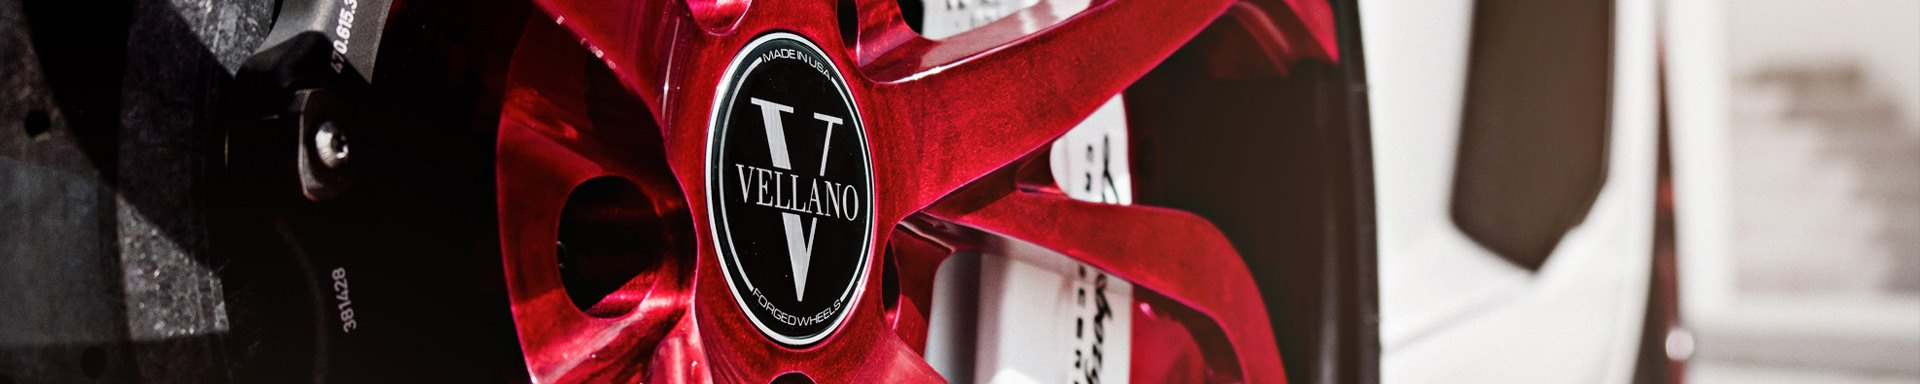 Universal VELLANO WHEELS & RIMS